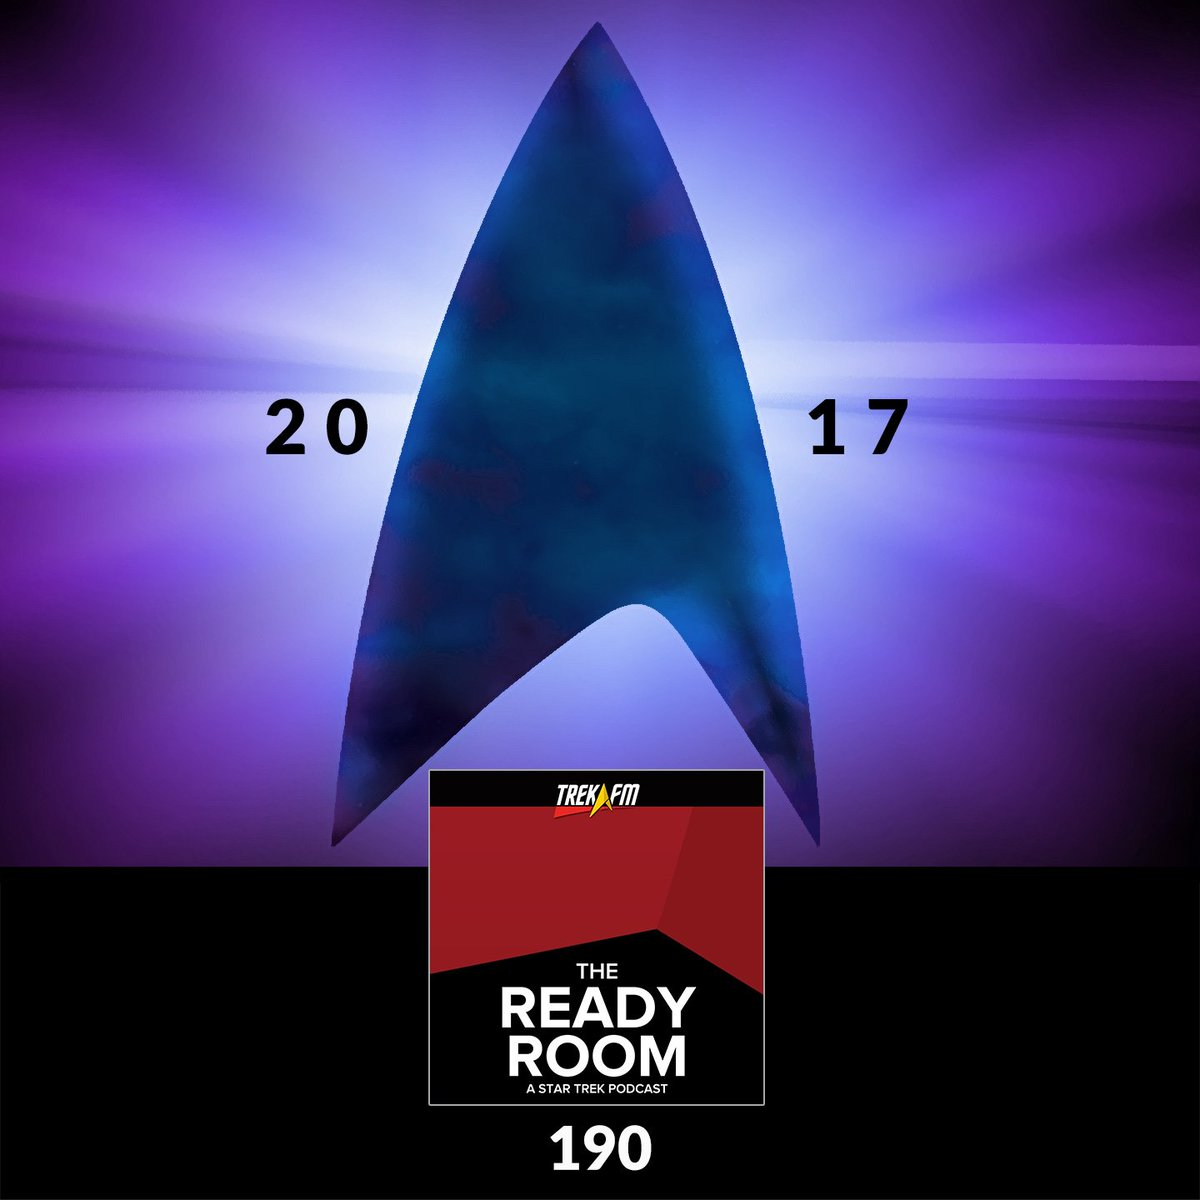 New Ready Room! @larrynemecek + I dive into CBS's new @StarTrek series! #podcast #StarTrek https://t.co/gFRYdl6G2R https://t.co/G3D8262lP1